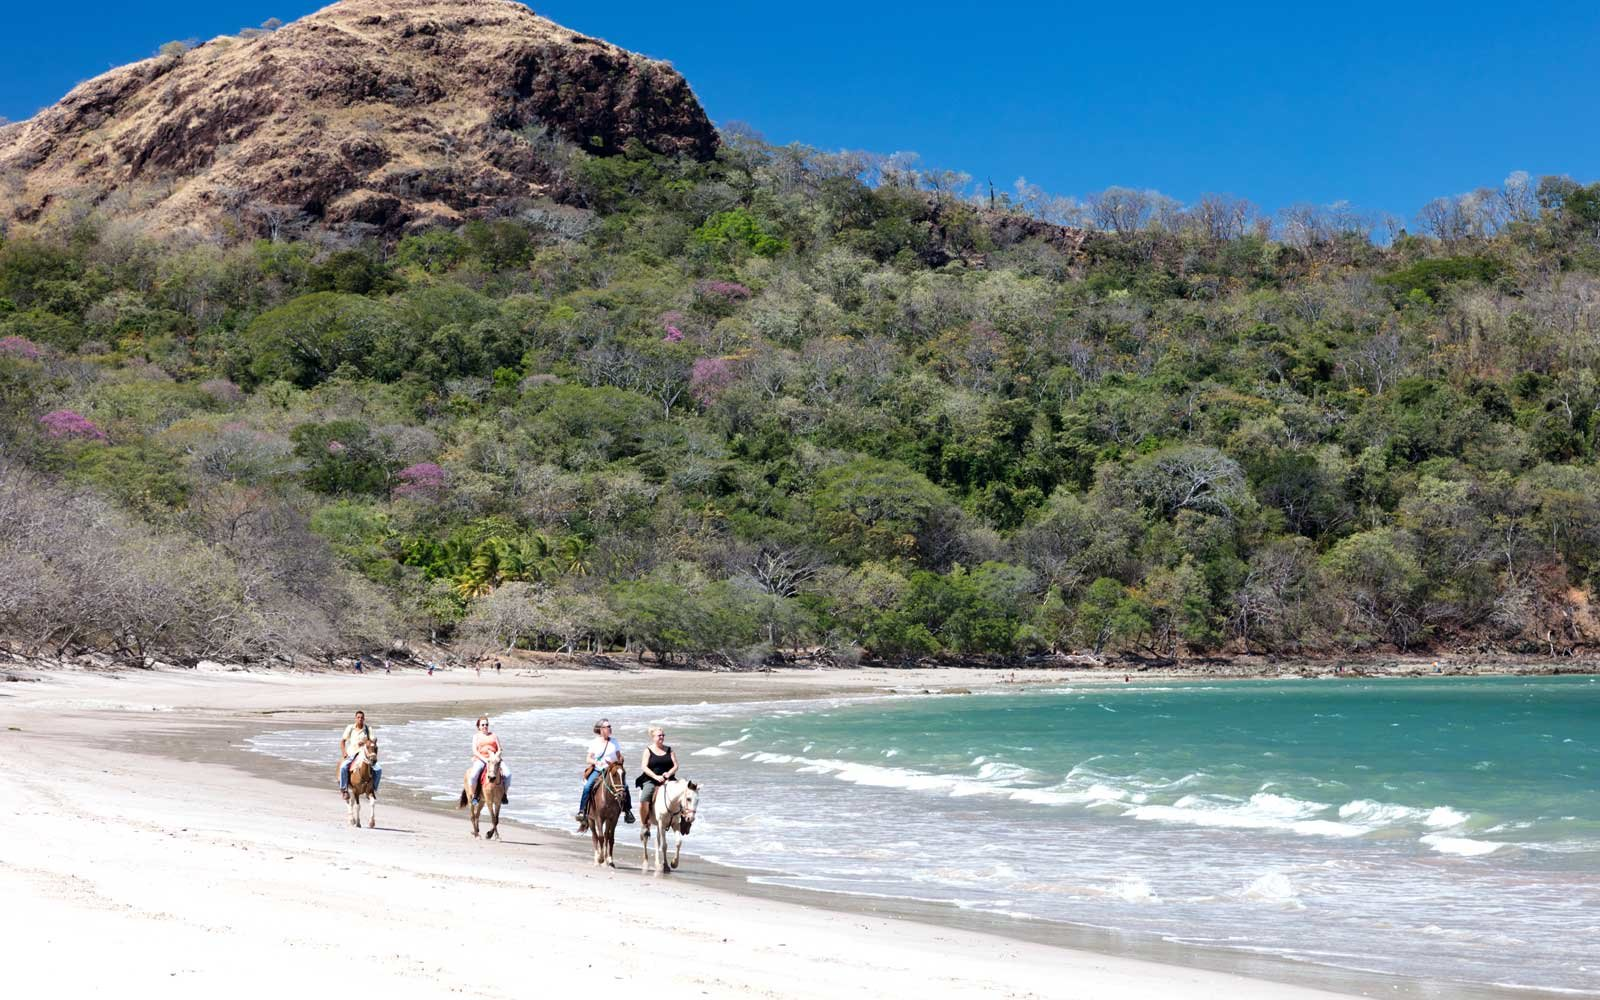 Horseback riding on Playa Conchal in the northern part of Nicoya Peninsula, Costa Rica